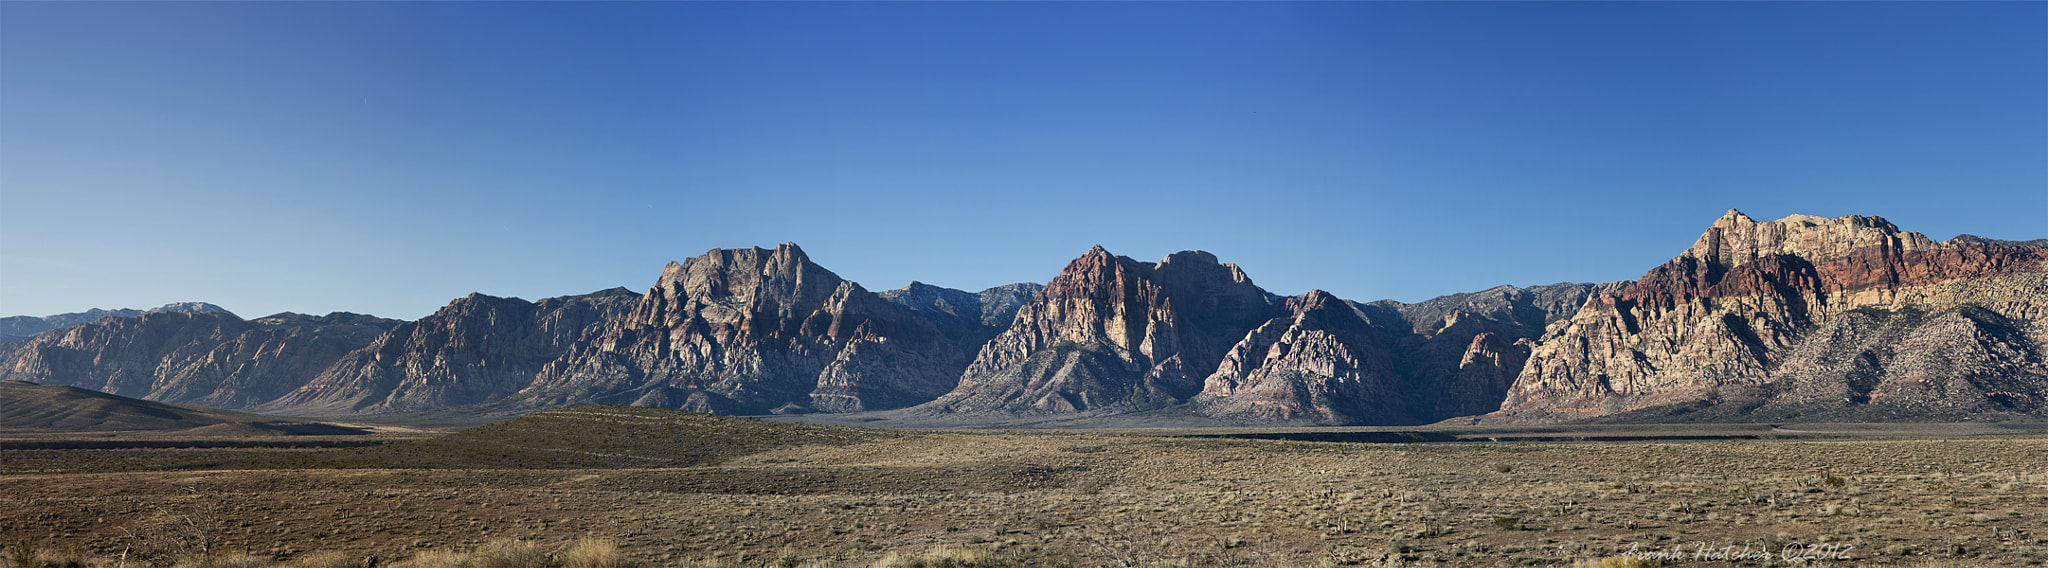 Photograph Red Rock Park  by Frank Hatcher on 500px